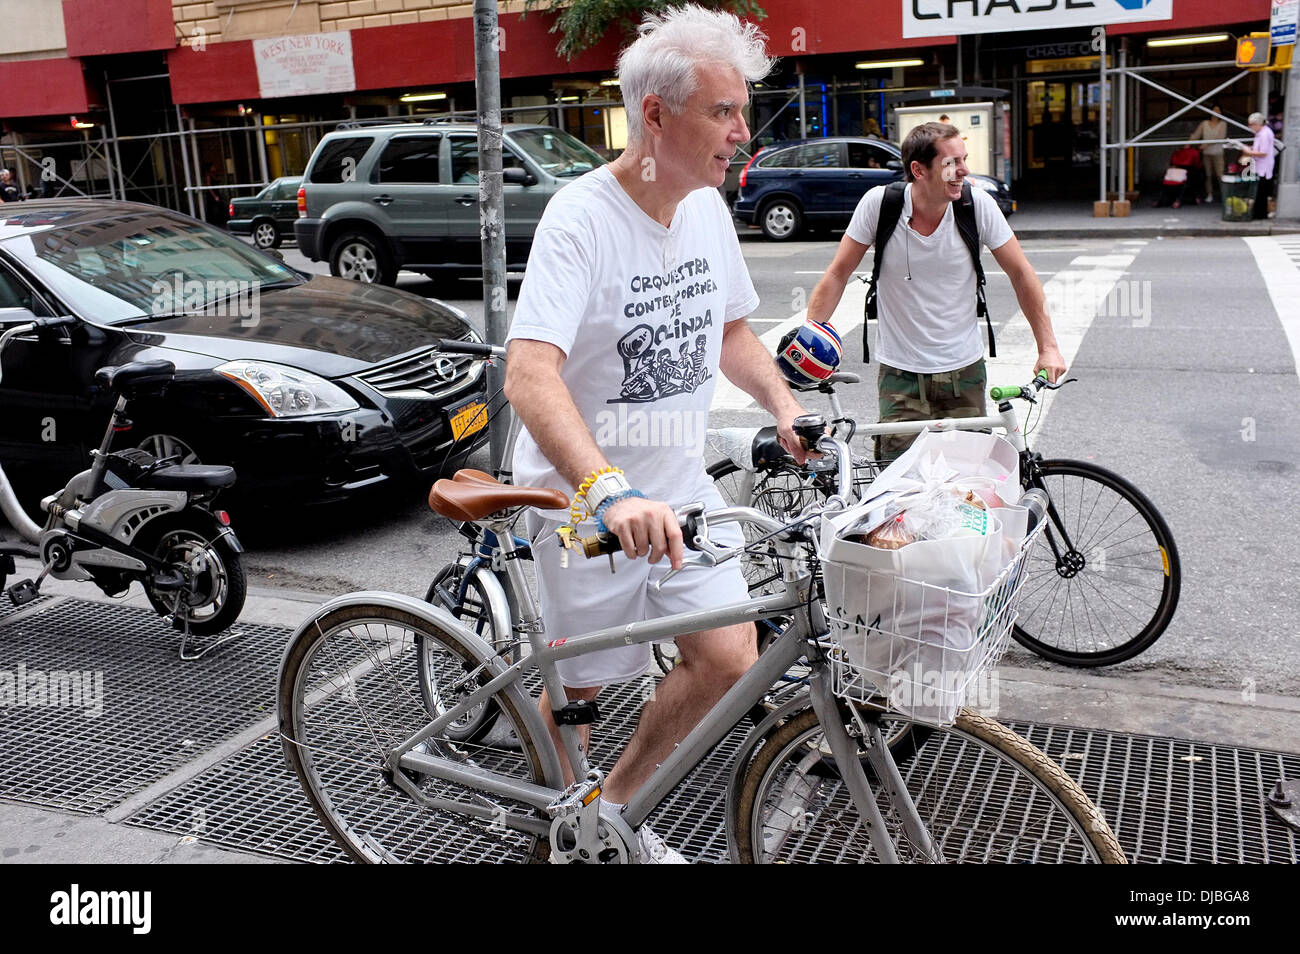 David Byrne Former Talking Heads frontman returns to his bicycle with groceries, after shopping at Whole Foods Market Stock Photo